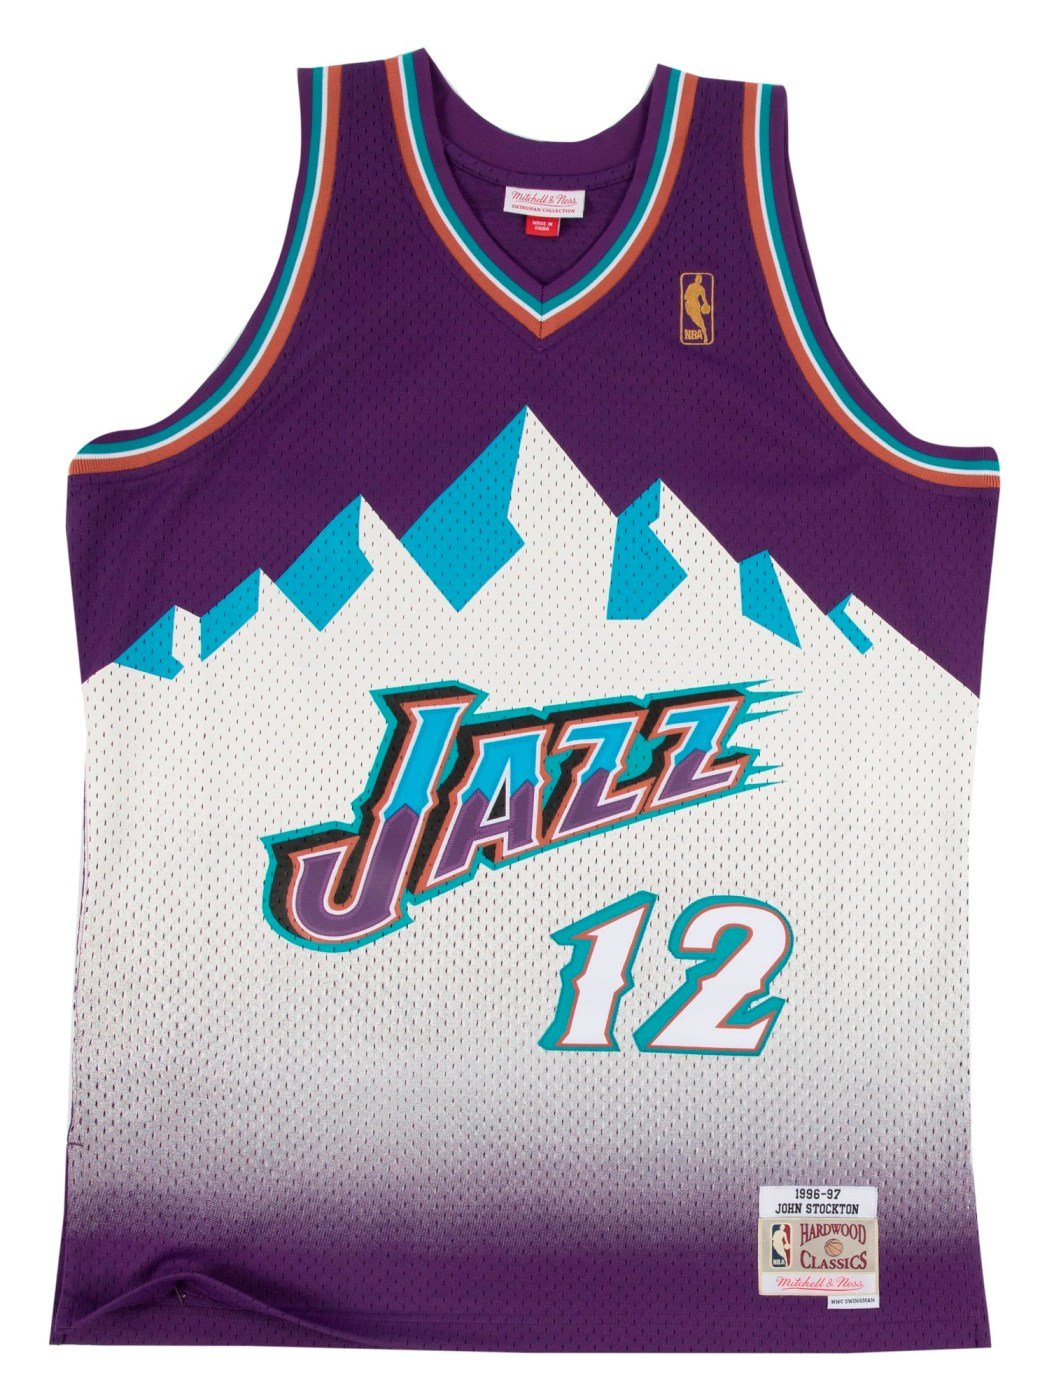 low priced c3d0d 7ae27 Mitchell & Ness Utah Jazz John Stockton Swingman Jersey